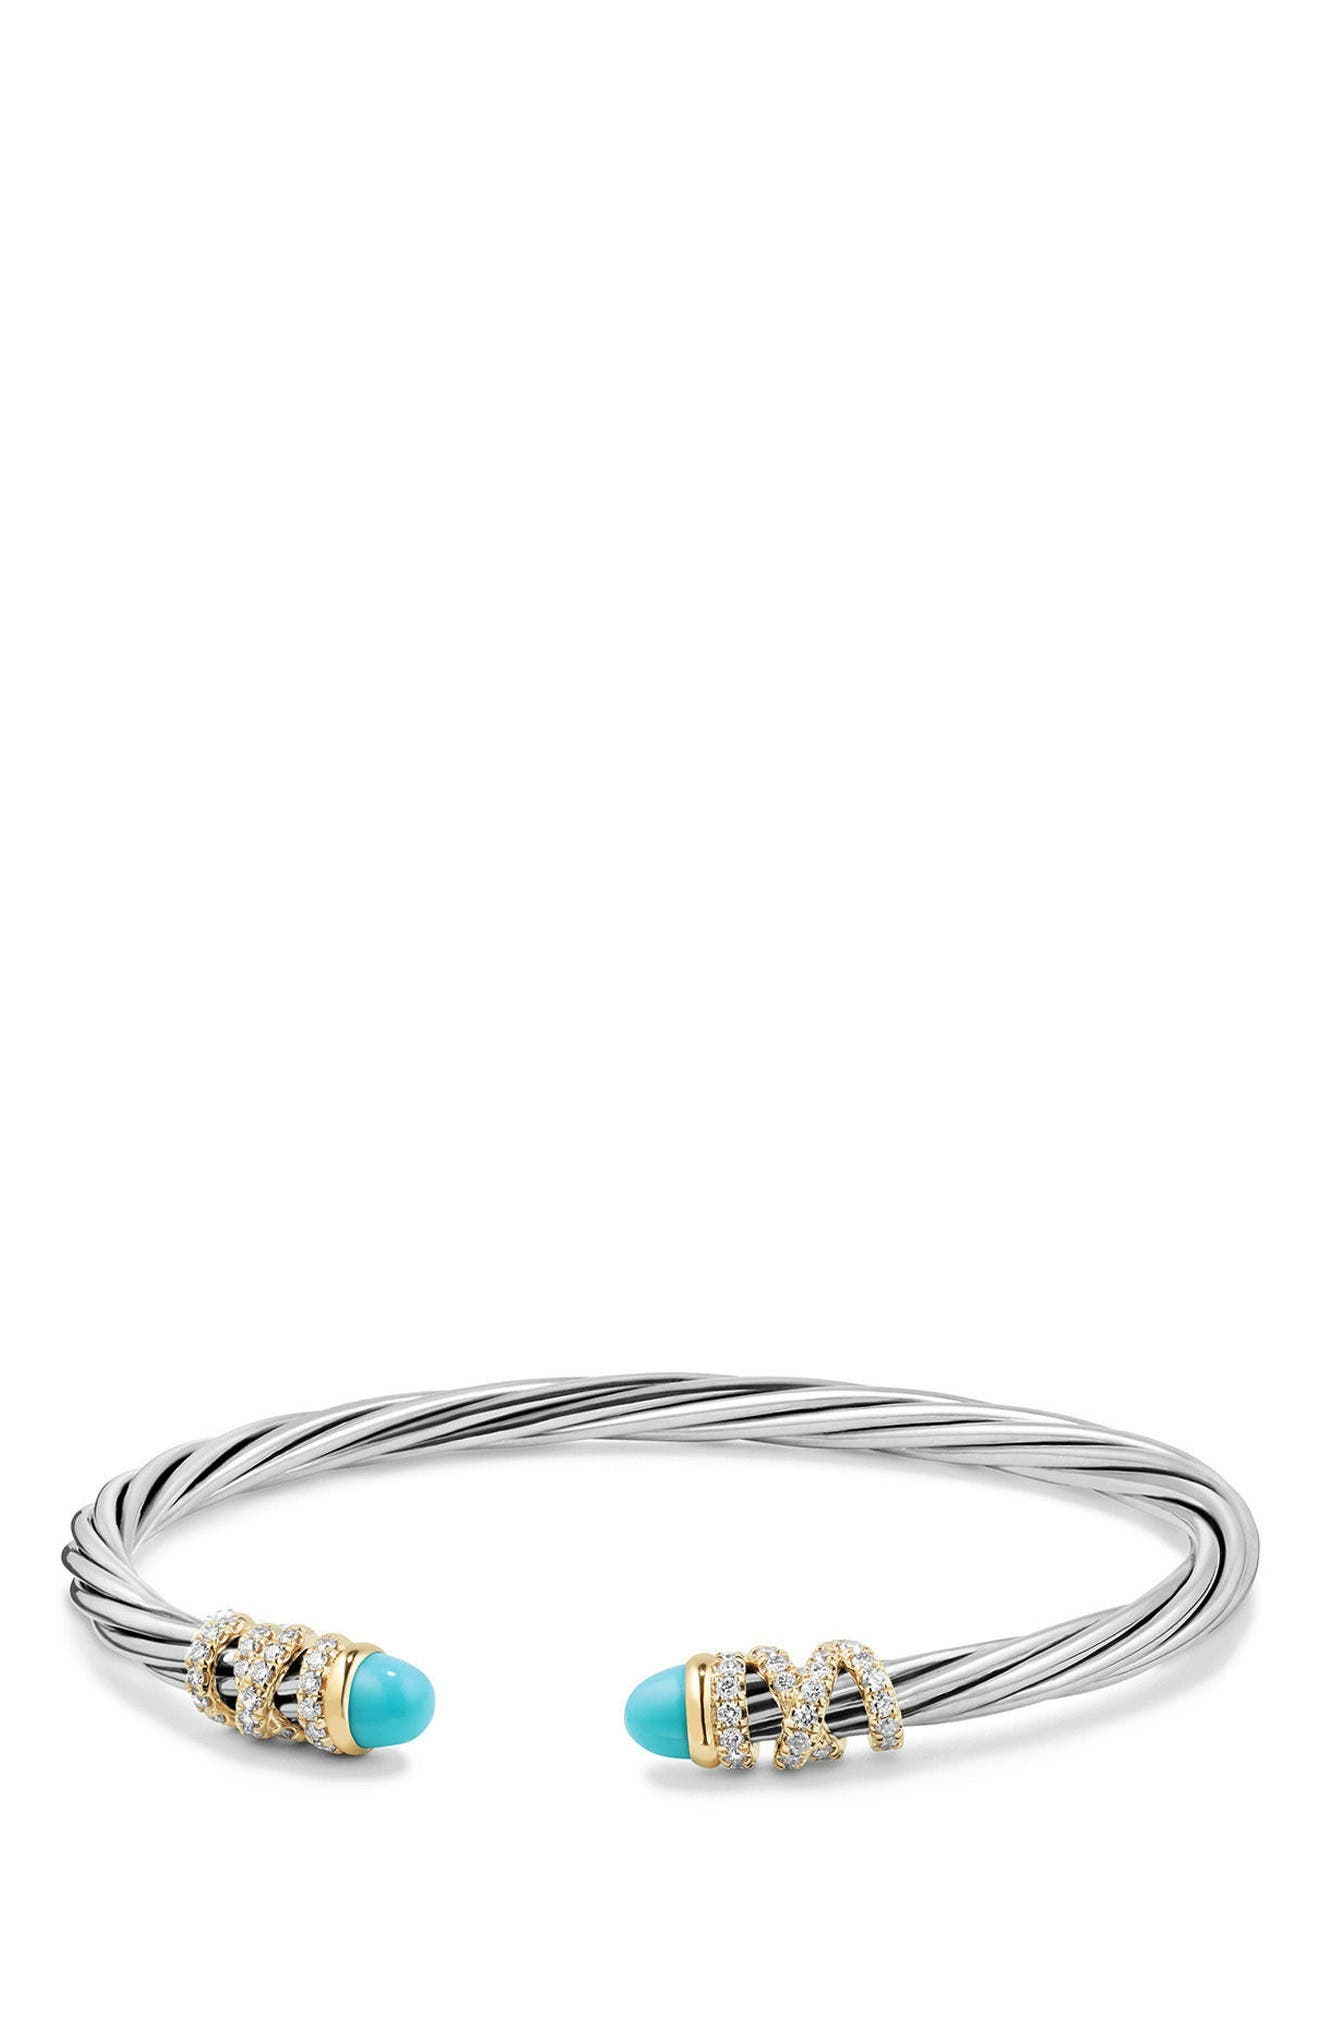 Helena End Station Bracelet with Diamonds & 18K Gold, 4mm,                             Main thumbnail 1, color,                             Silver/ Turquoise